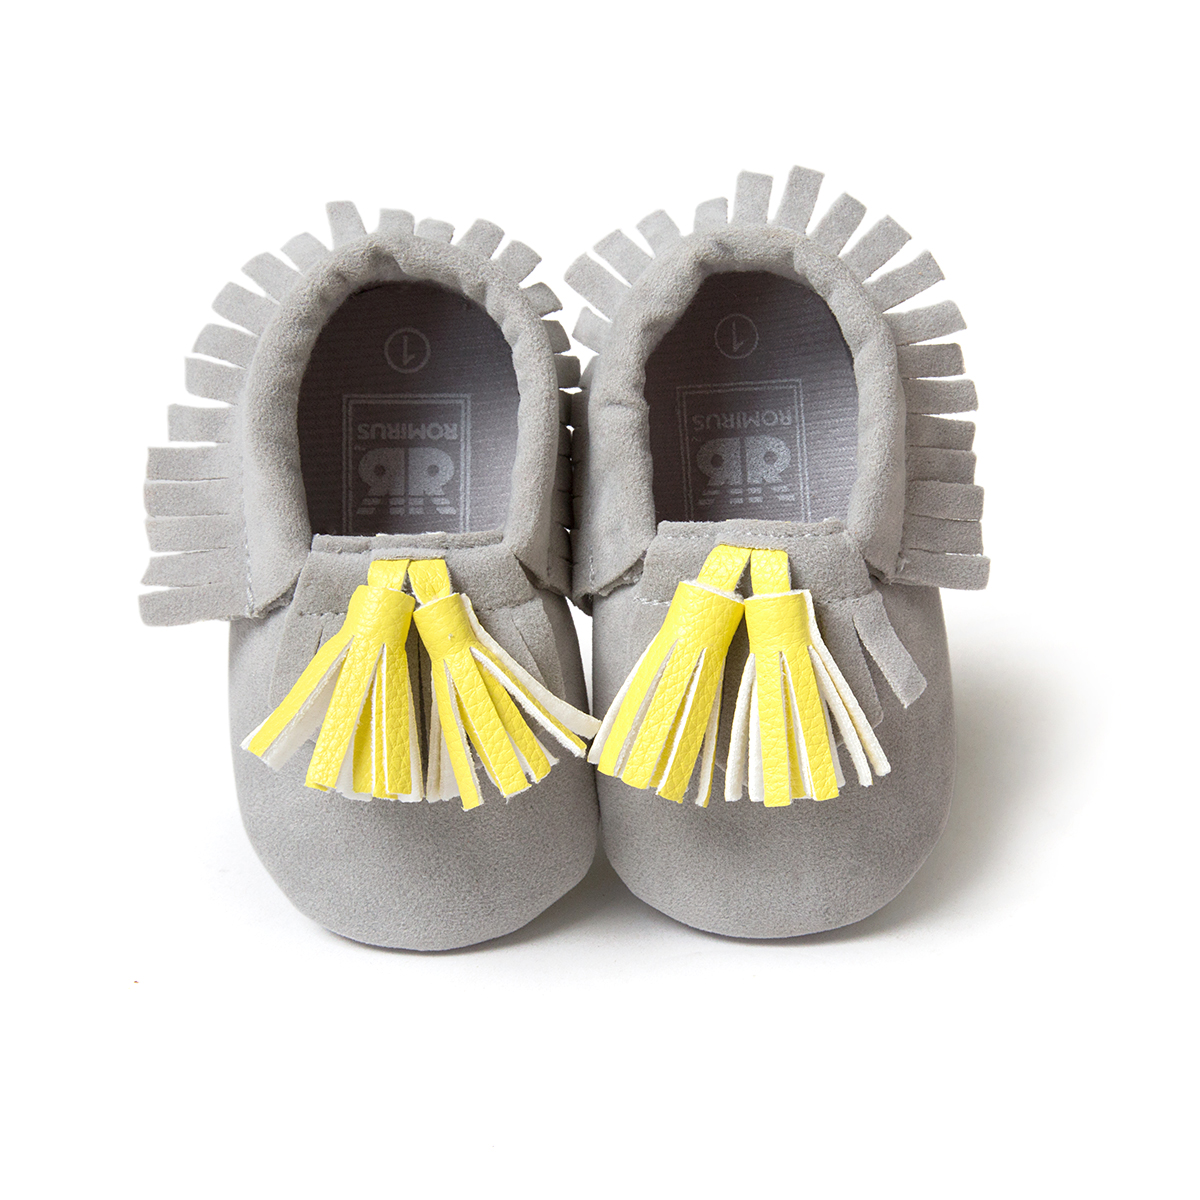 Leather-With-Matte-Fringed-Baby-Moccasins-Toddler-Shoes-Baby-Stripe-Tassel-Infant-Newborn-Girls-Shoes-First-Walker-2219-2